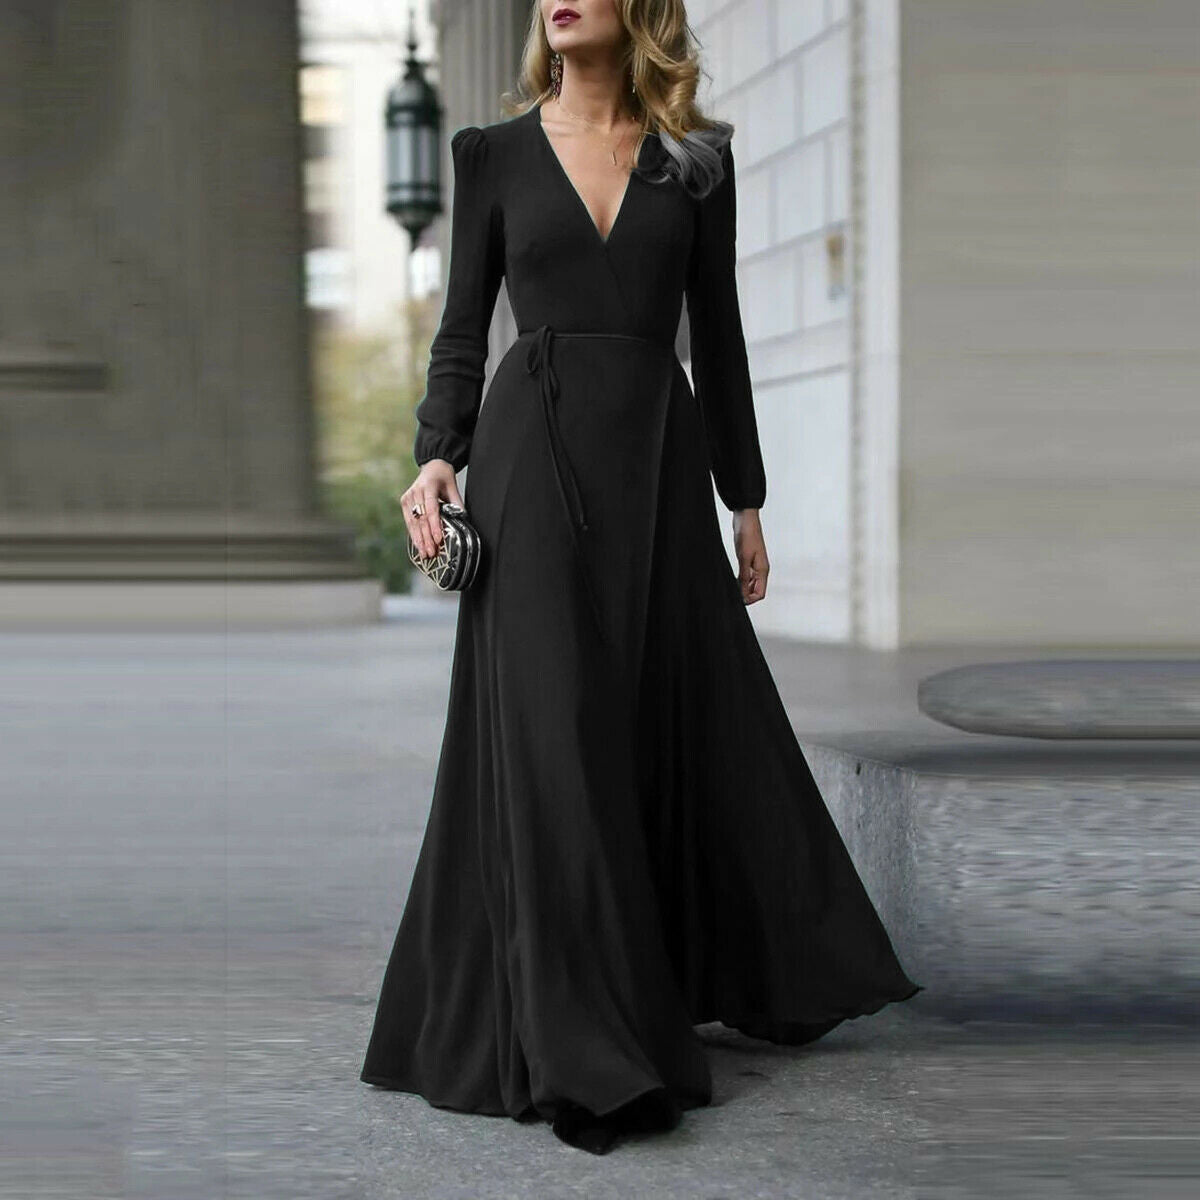 Elegant Women's Long Bodycon Dress with Sleeves - American stock